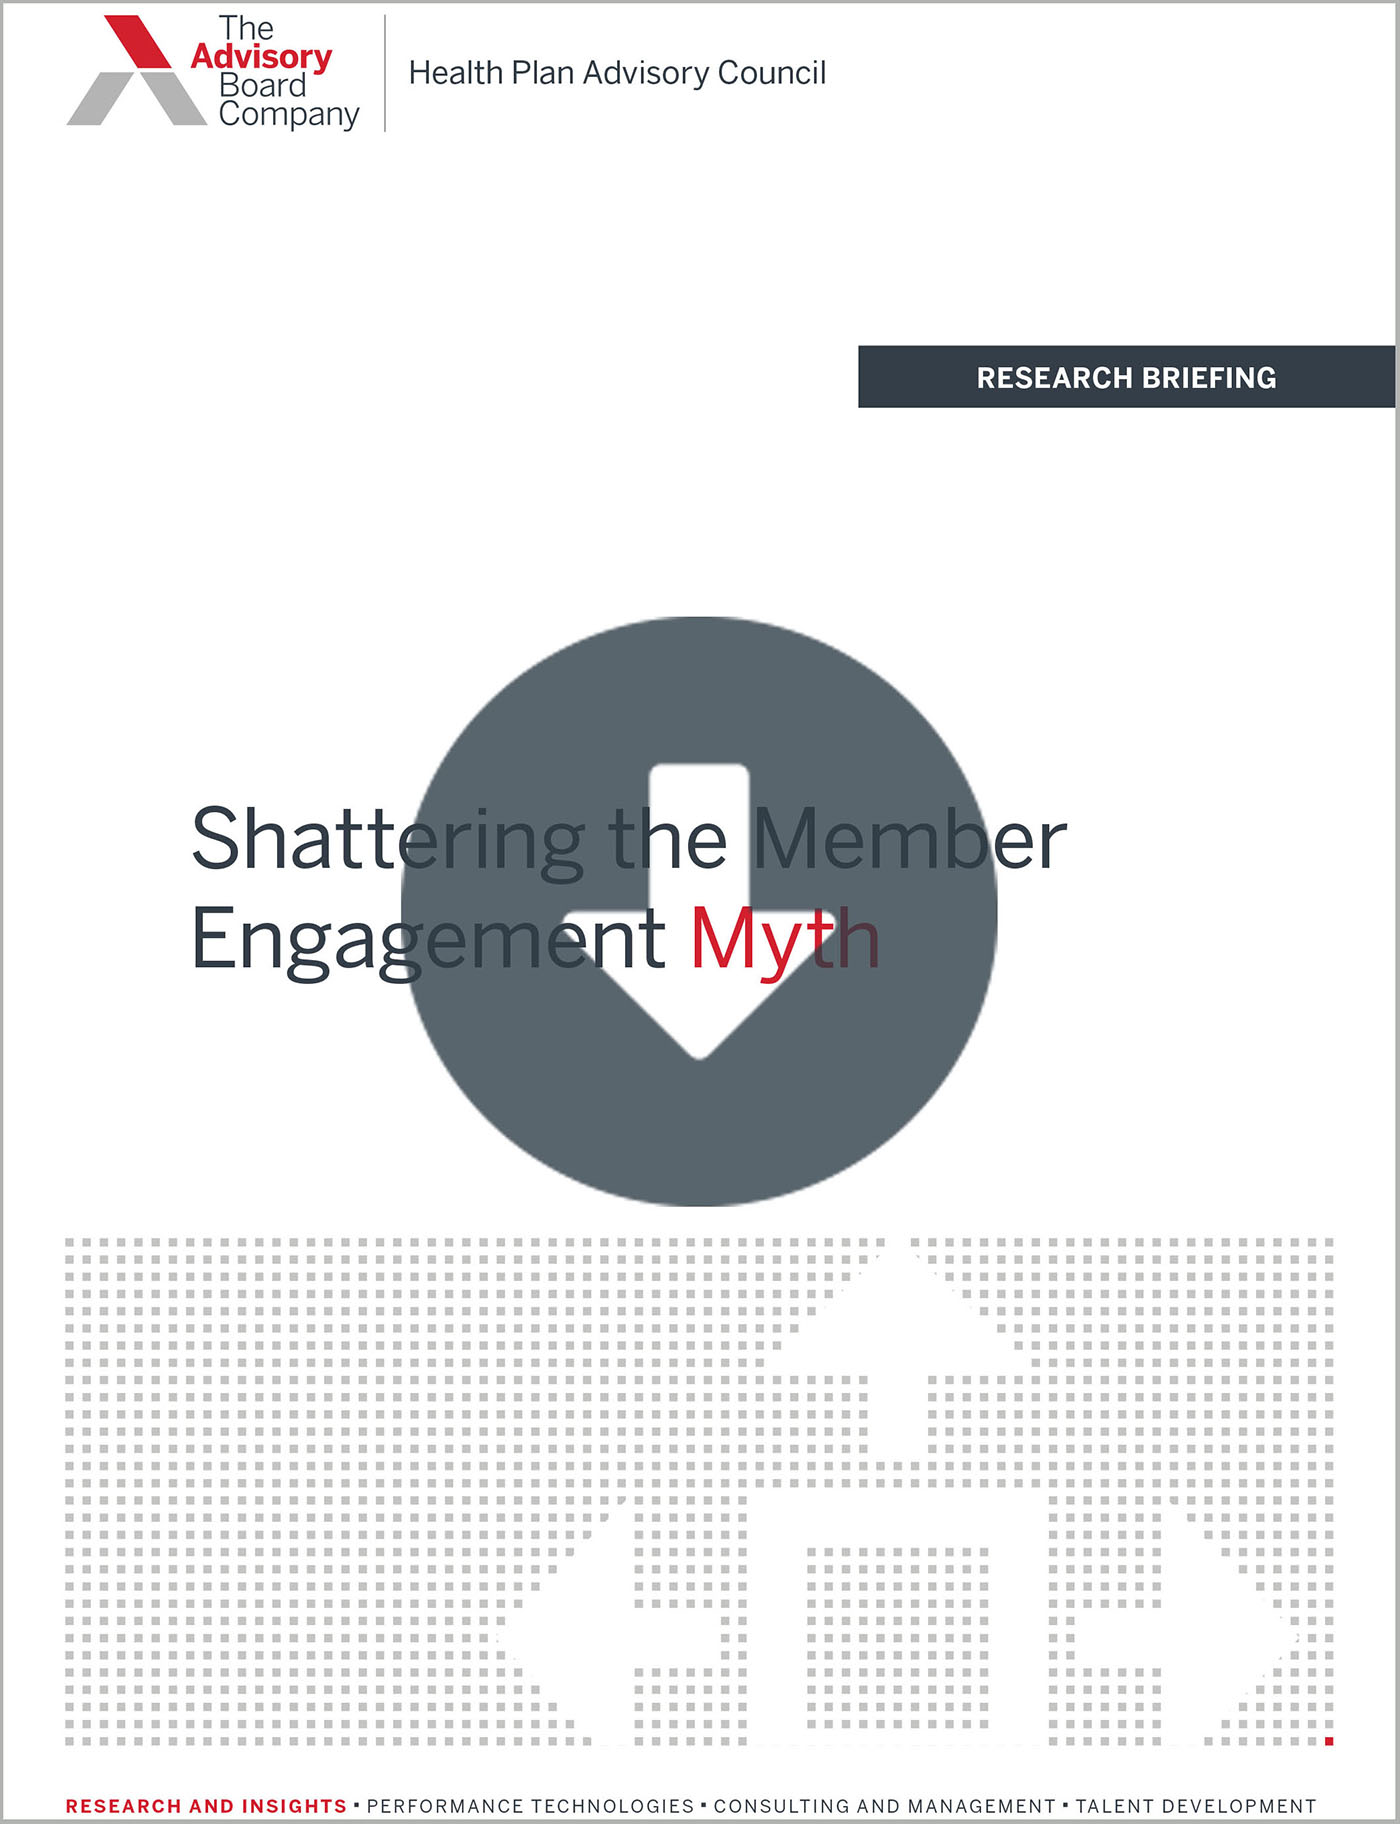 Shattering the Member Engagement Myth